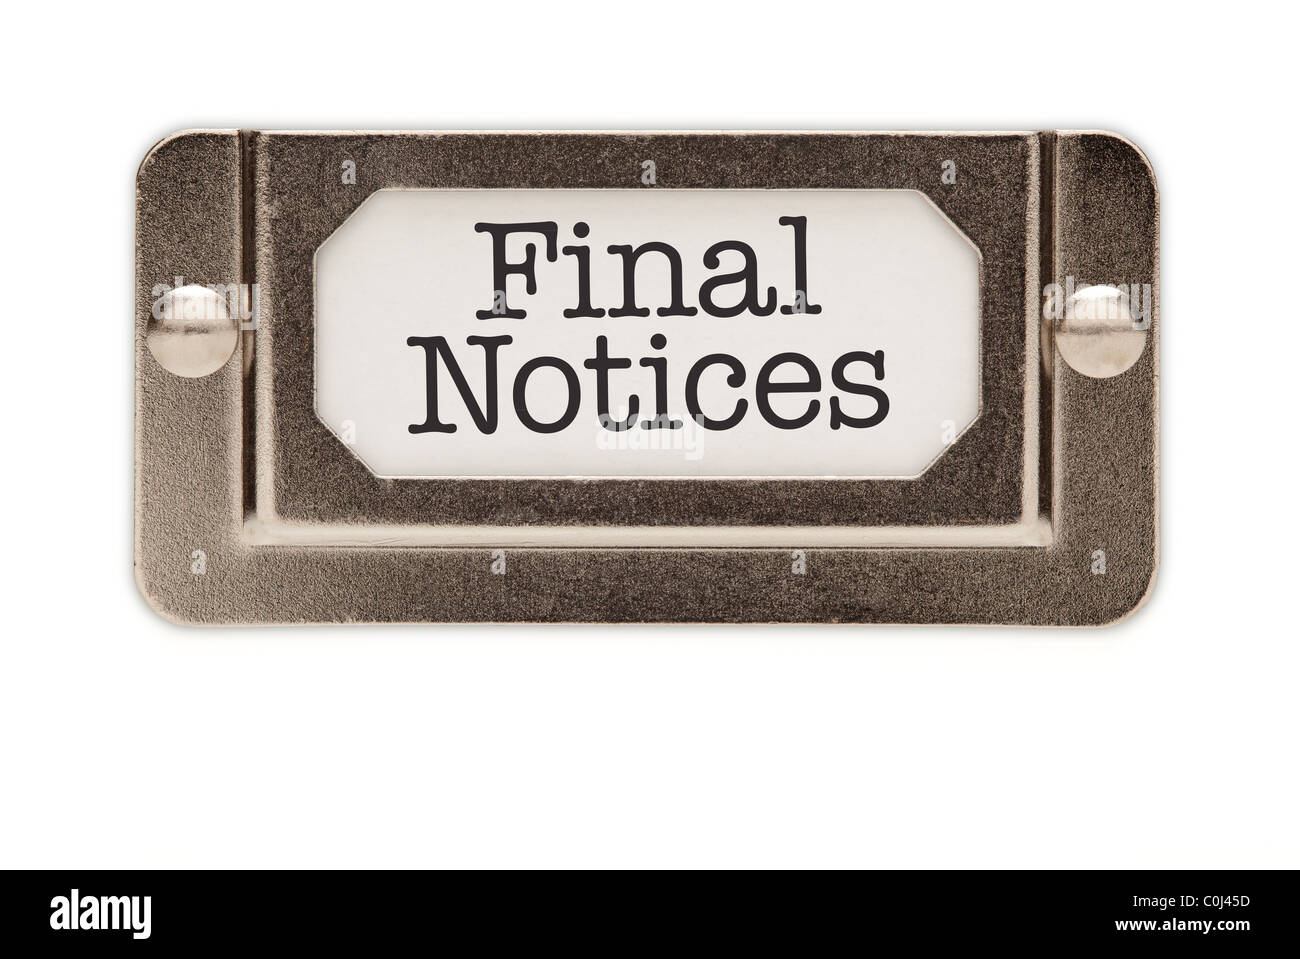 Final Notices File Drawer Label Isolated on a White Background. - Stock Image